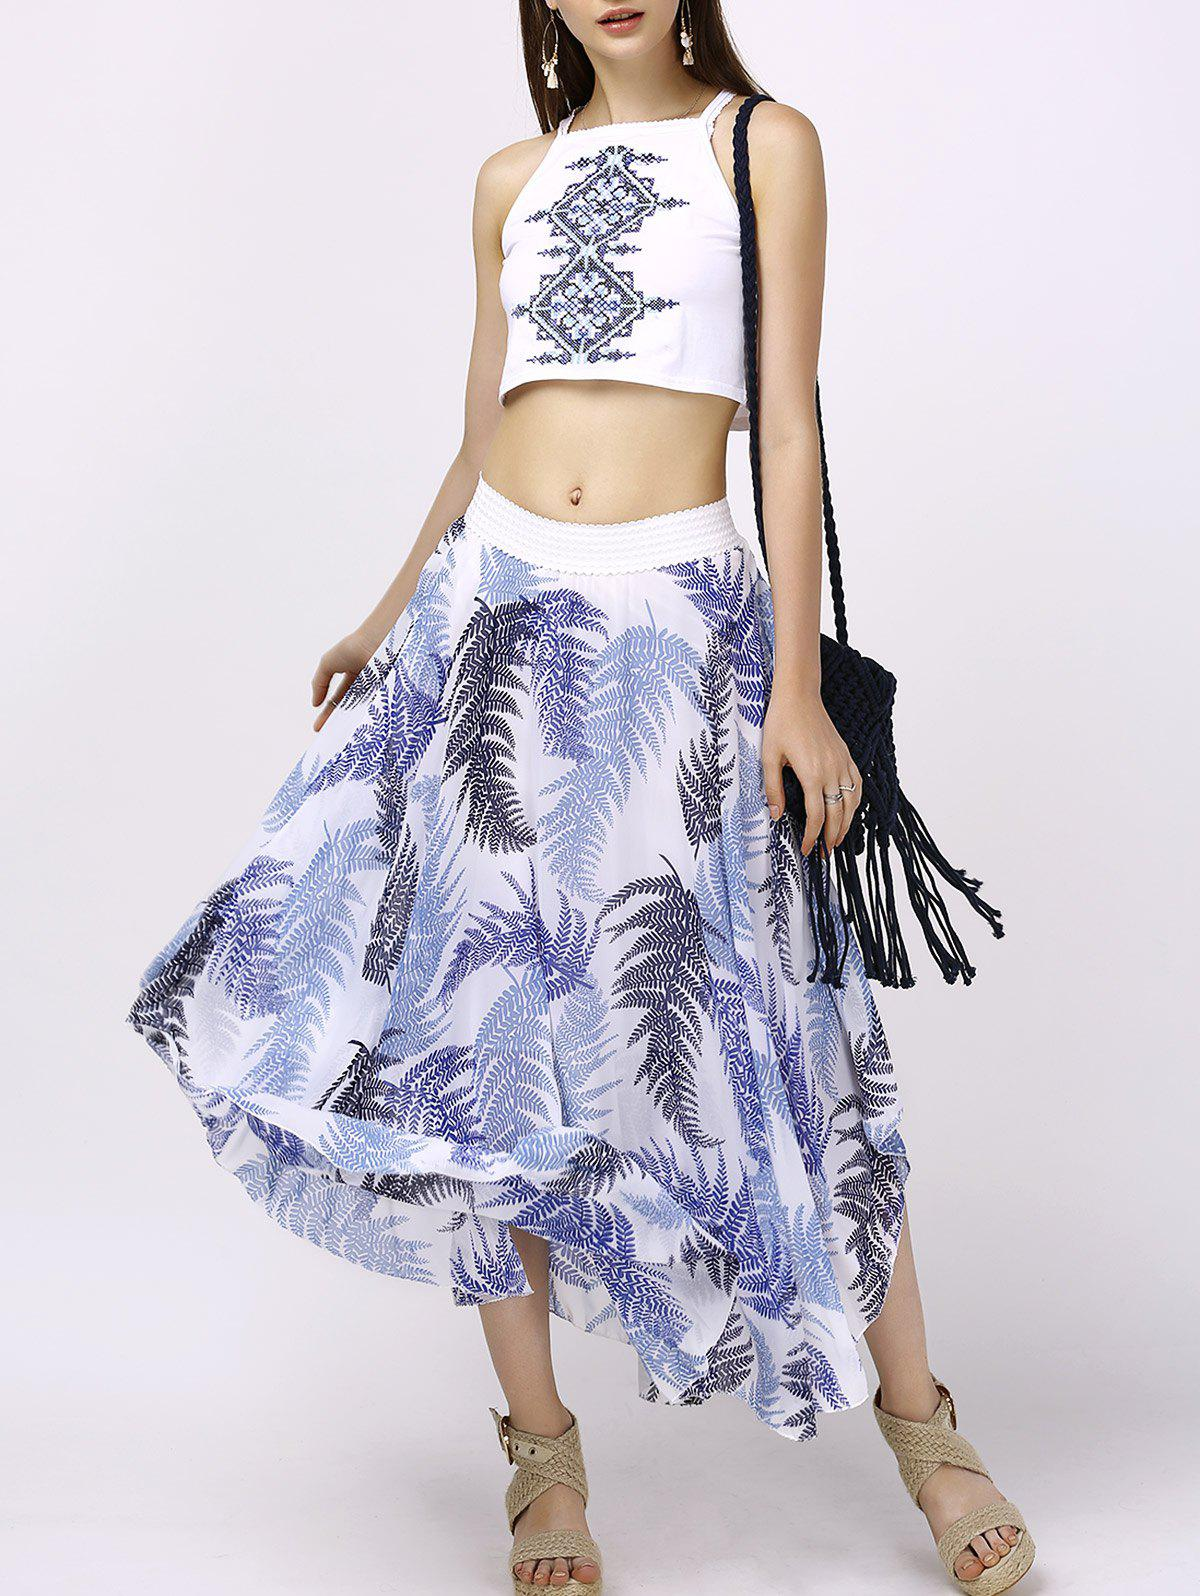 Ethnic Style Women's Embroidered Tank Top and Leaf Print Skirt Set - BLUE/WHITE M